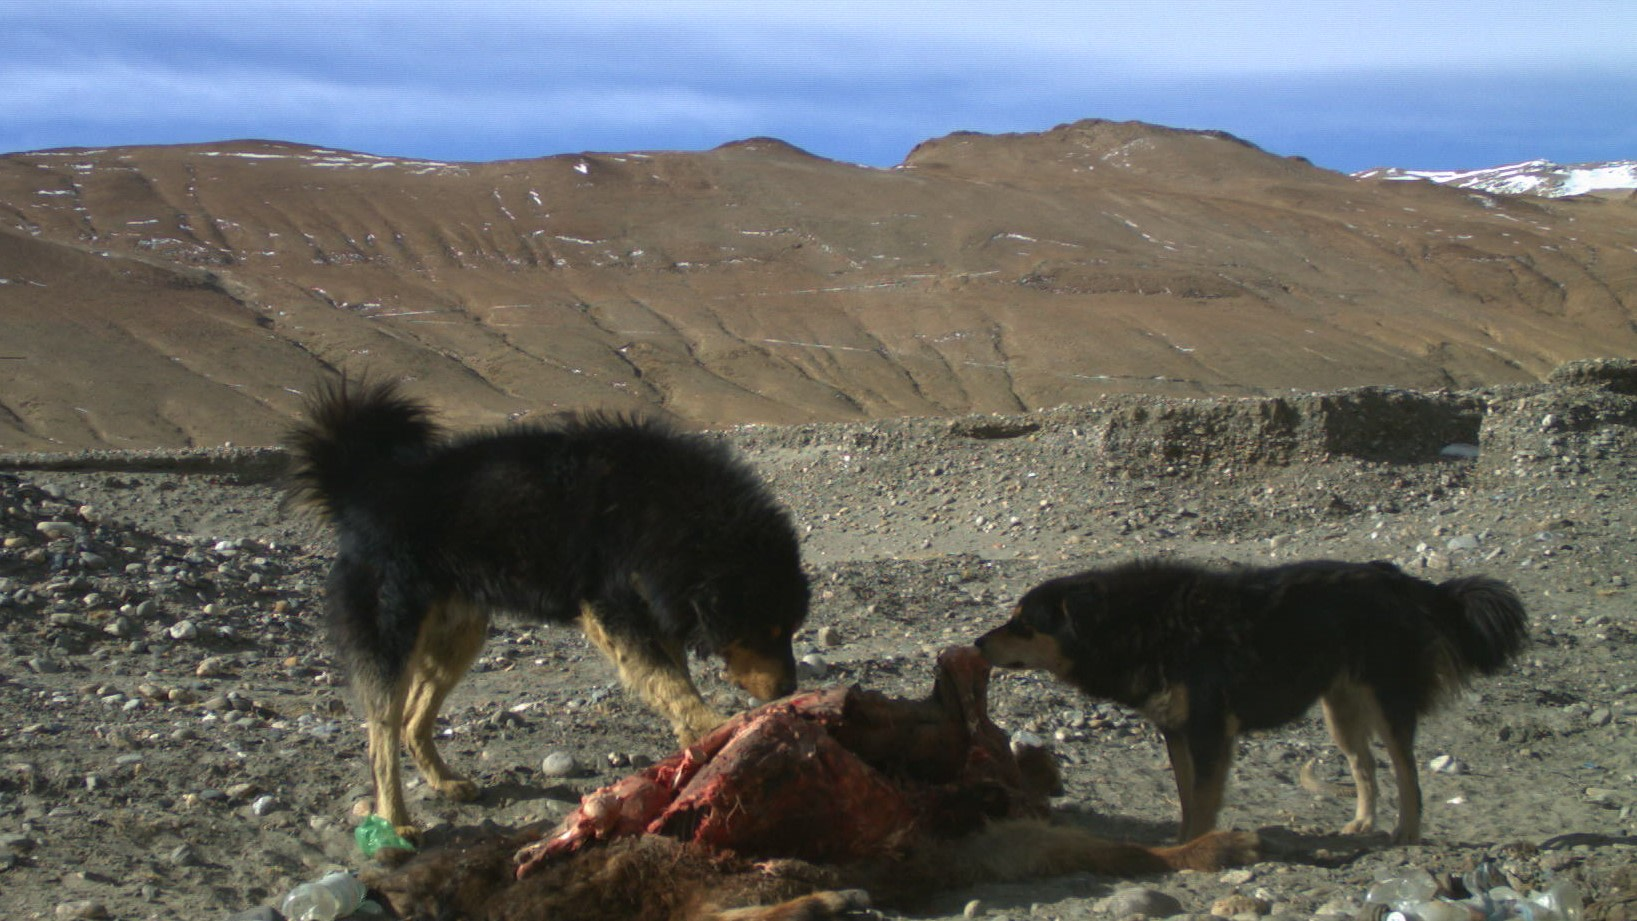 Dogs dominate carcass site remaining in the spot for three or four days, until they consume the meal in its entirety. Photo: Subhashini Krishnan